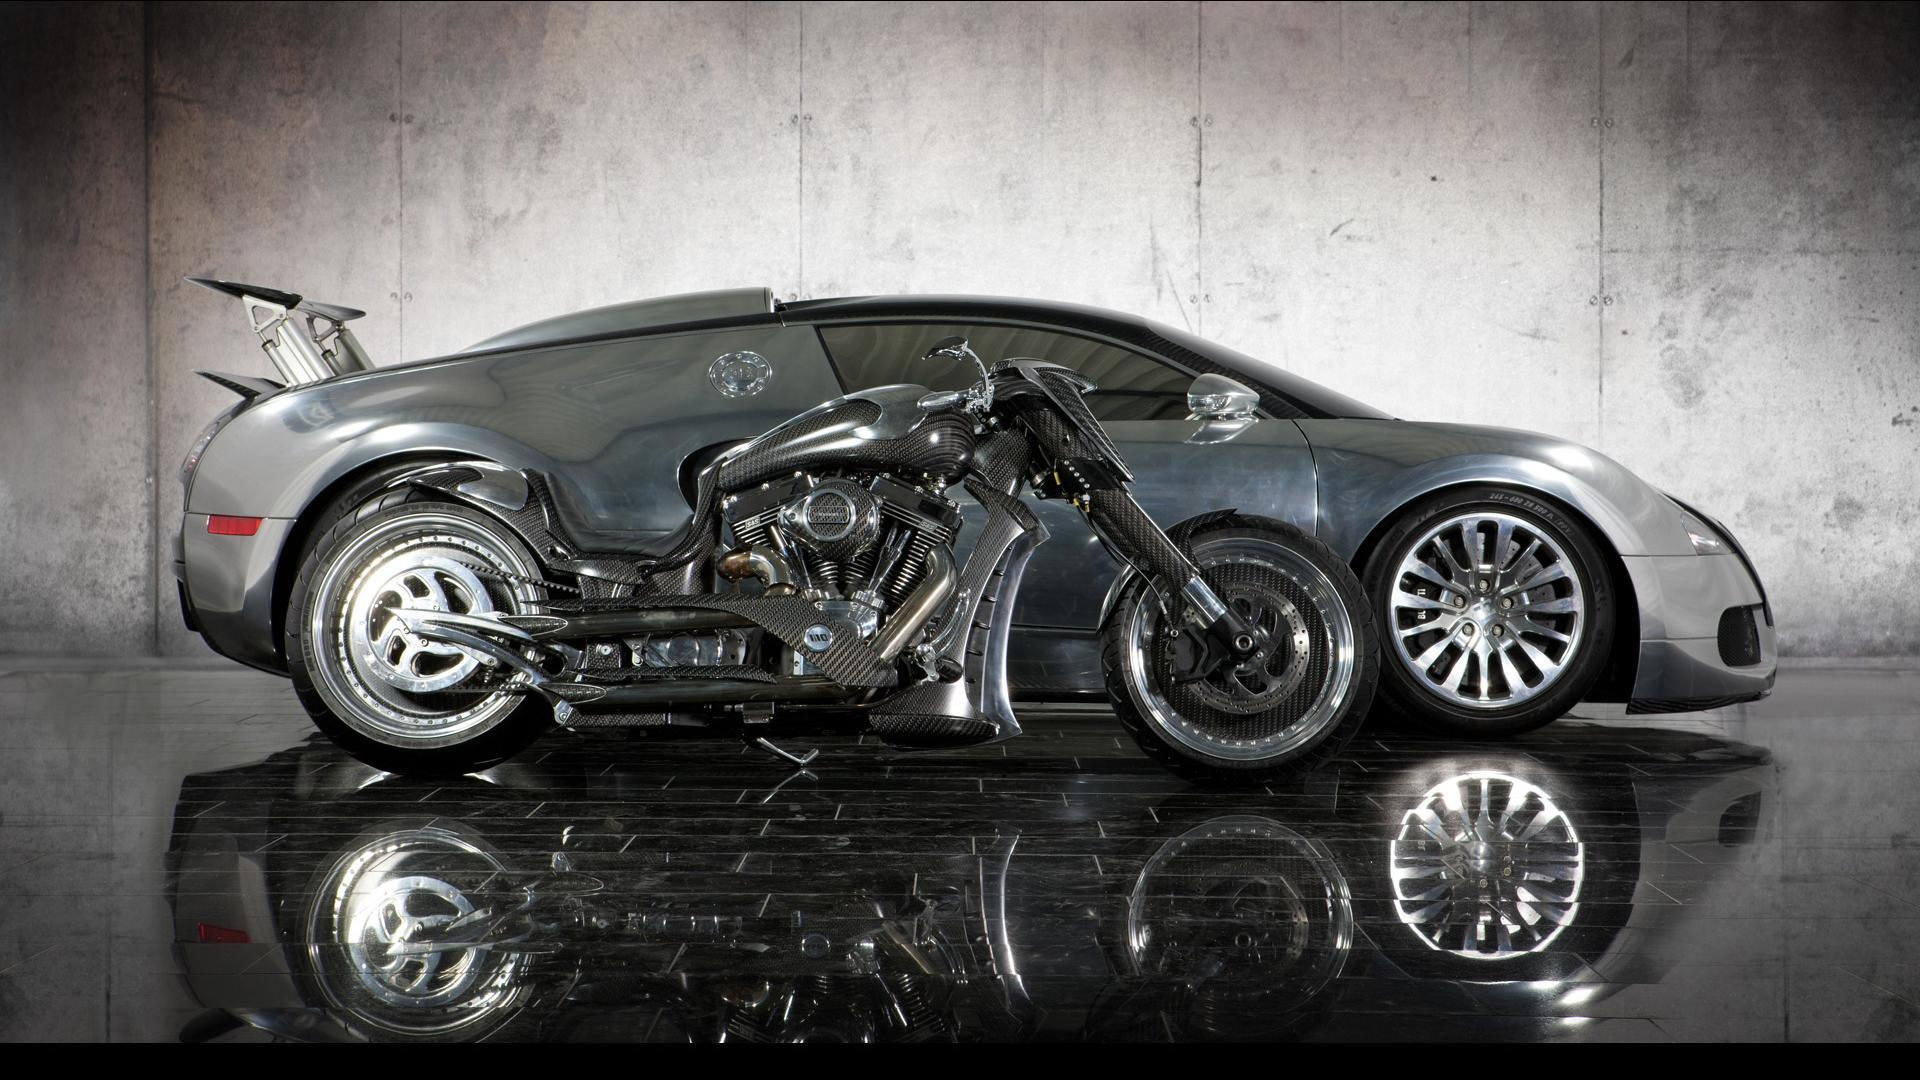 2011 mansory zapico custom bike bugatti veyron custom mansory zapico bike carbon fiber custom. Black Bedroom Furniture Sets. Home Design Ideas